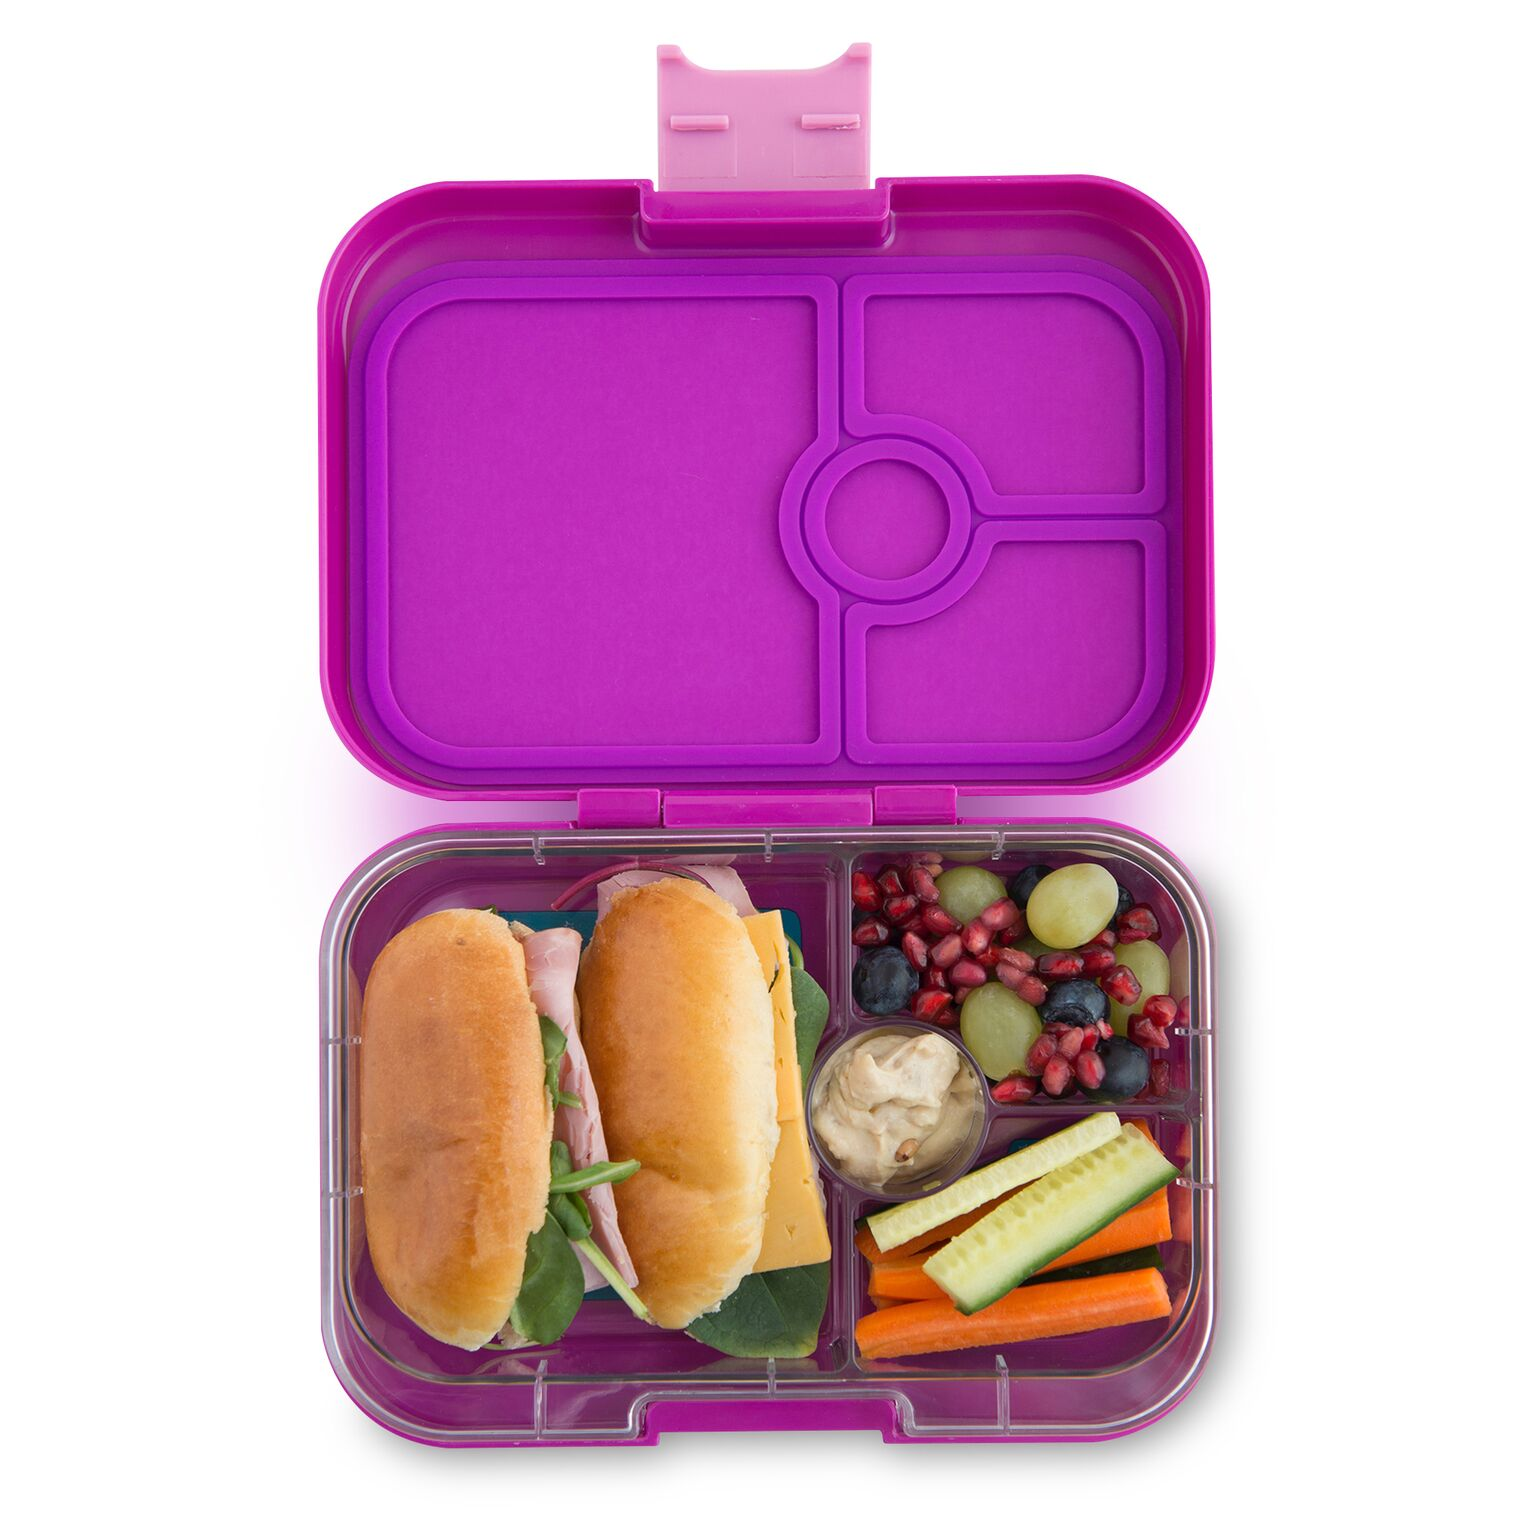 yumbox panino lunch box bijoux purple baby vegas. Black Bedroom Furniture Sets. Home Design Ideas